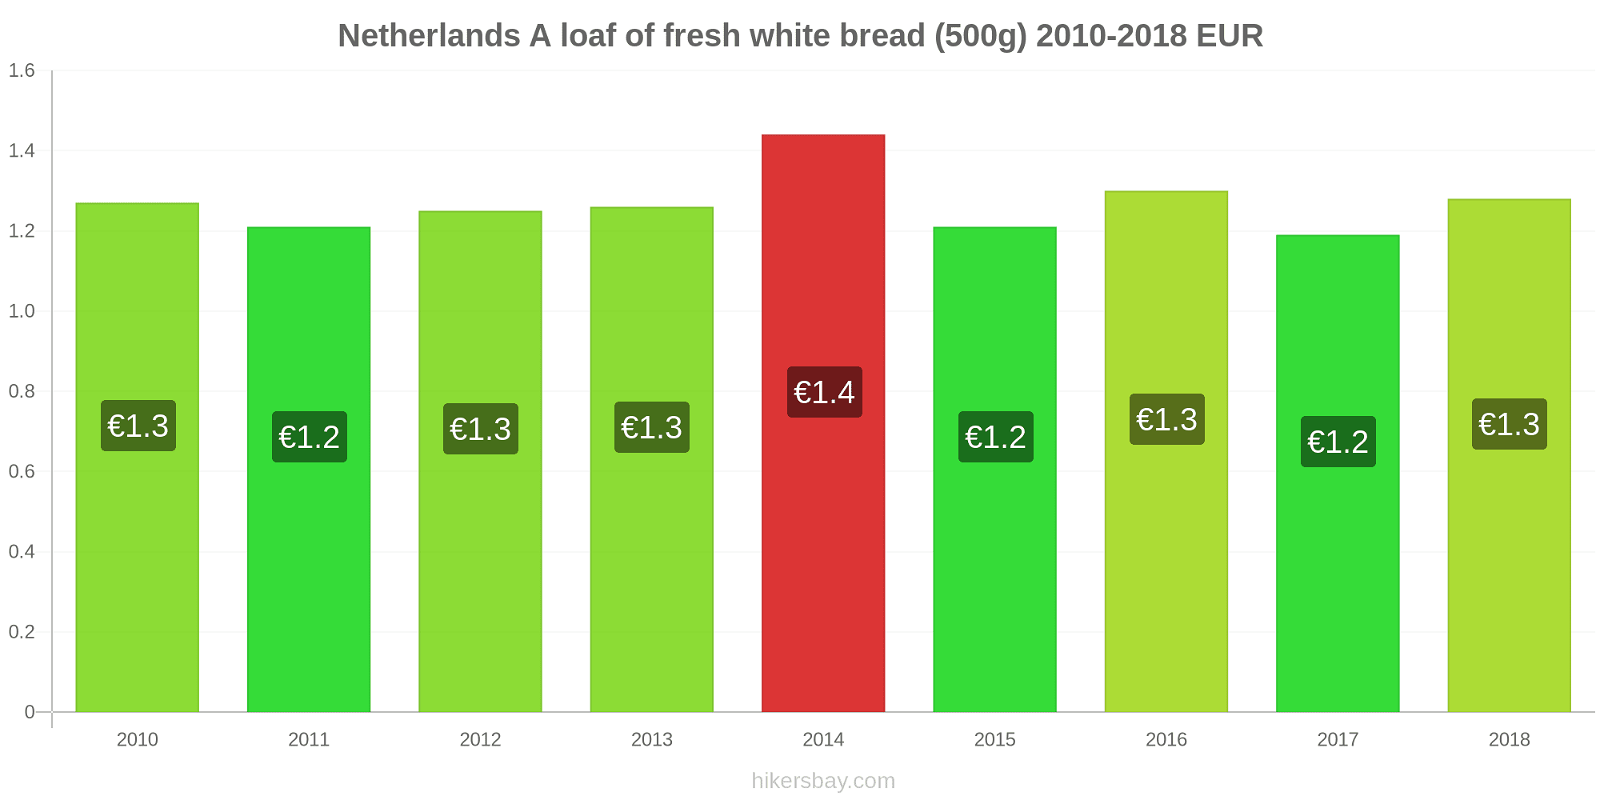 Netherlands price changes A loaf of fresh white bread (500g) hikersbay.com